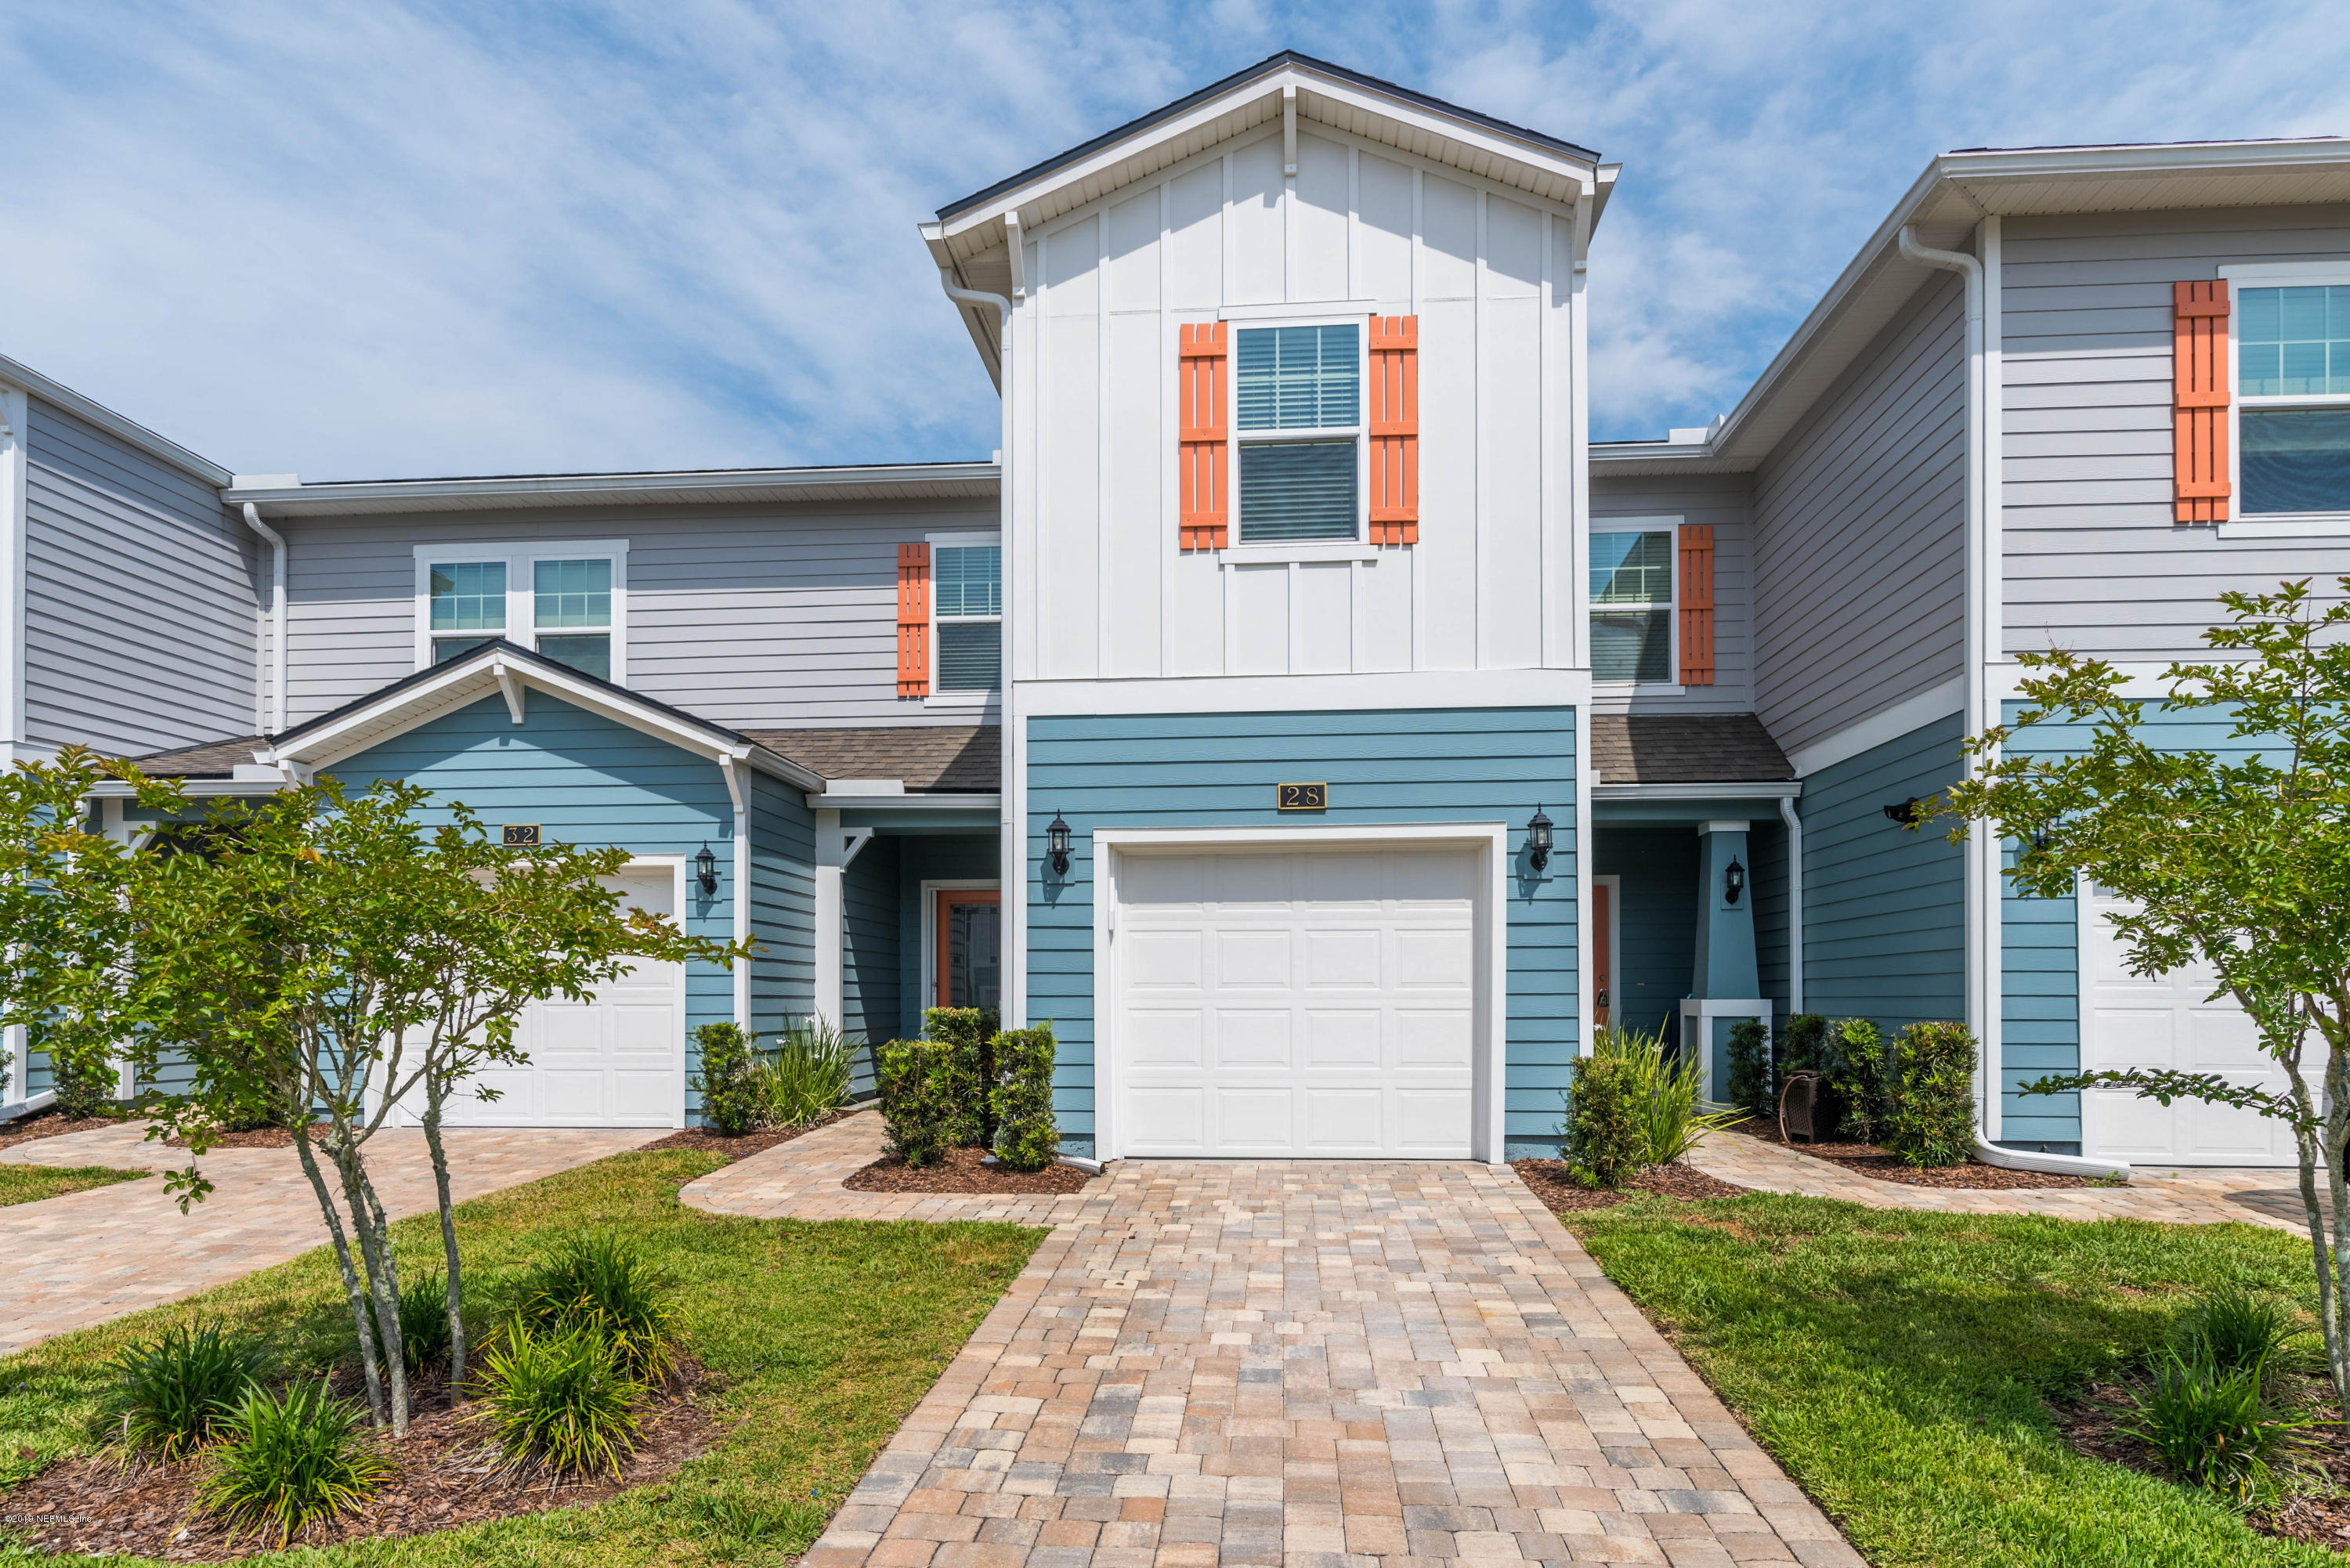 Photo of 28 PINDO PALM, PONTE VEDRA, FL 32081